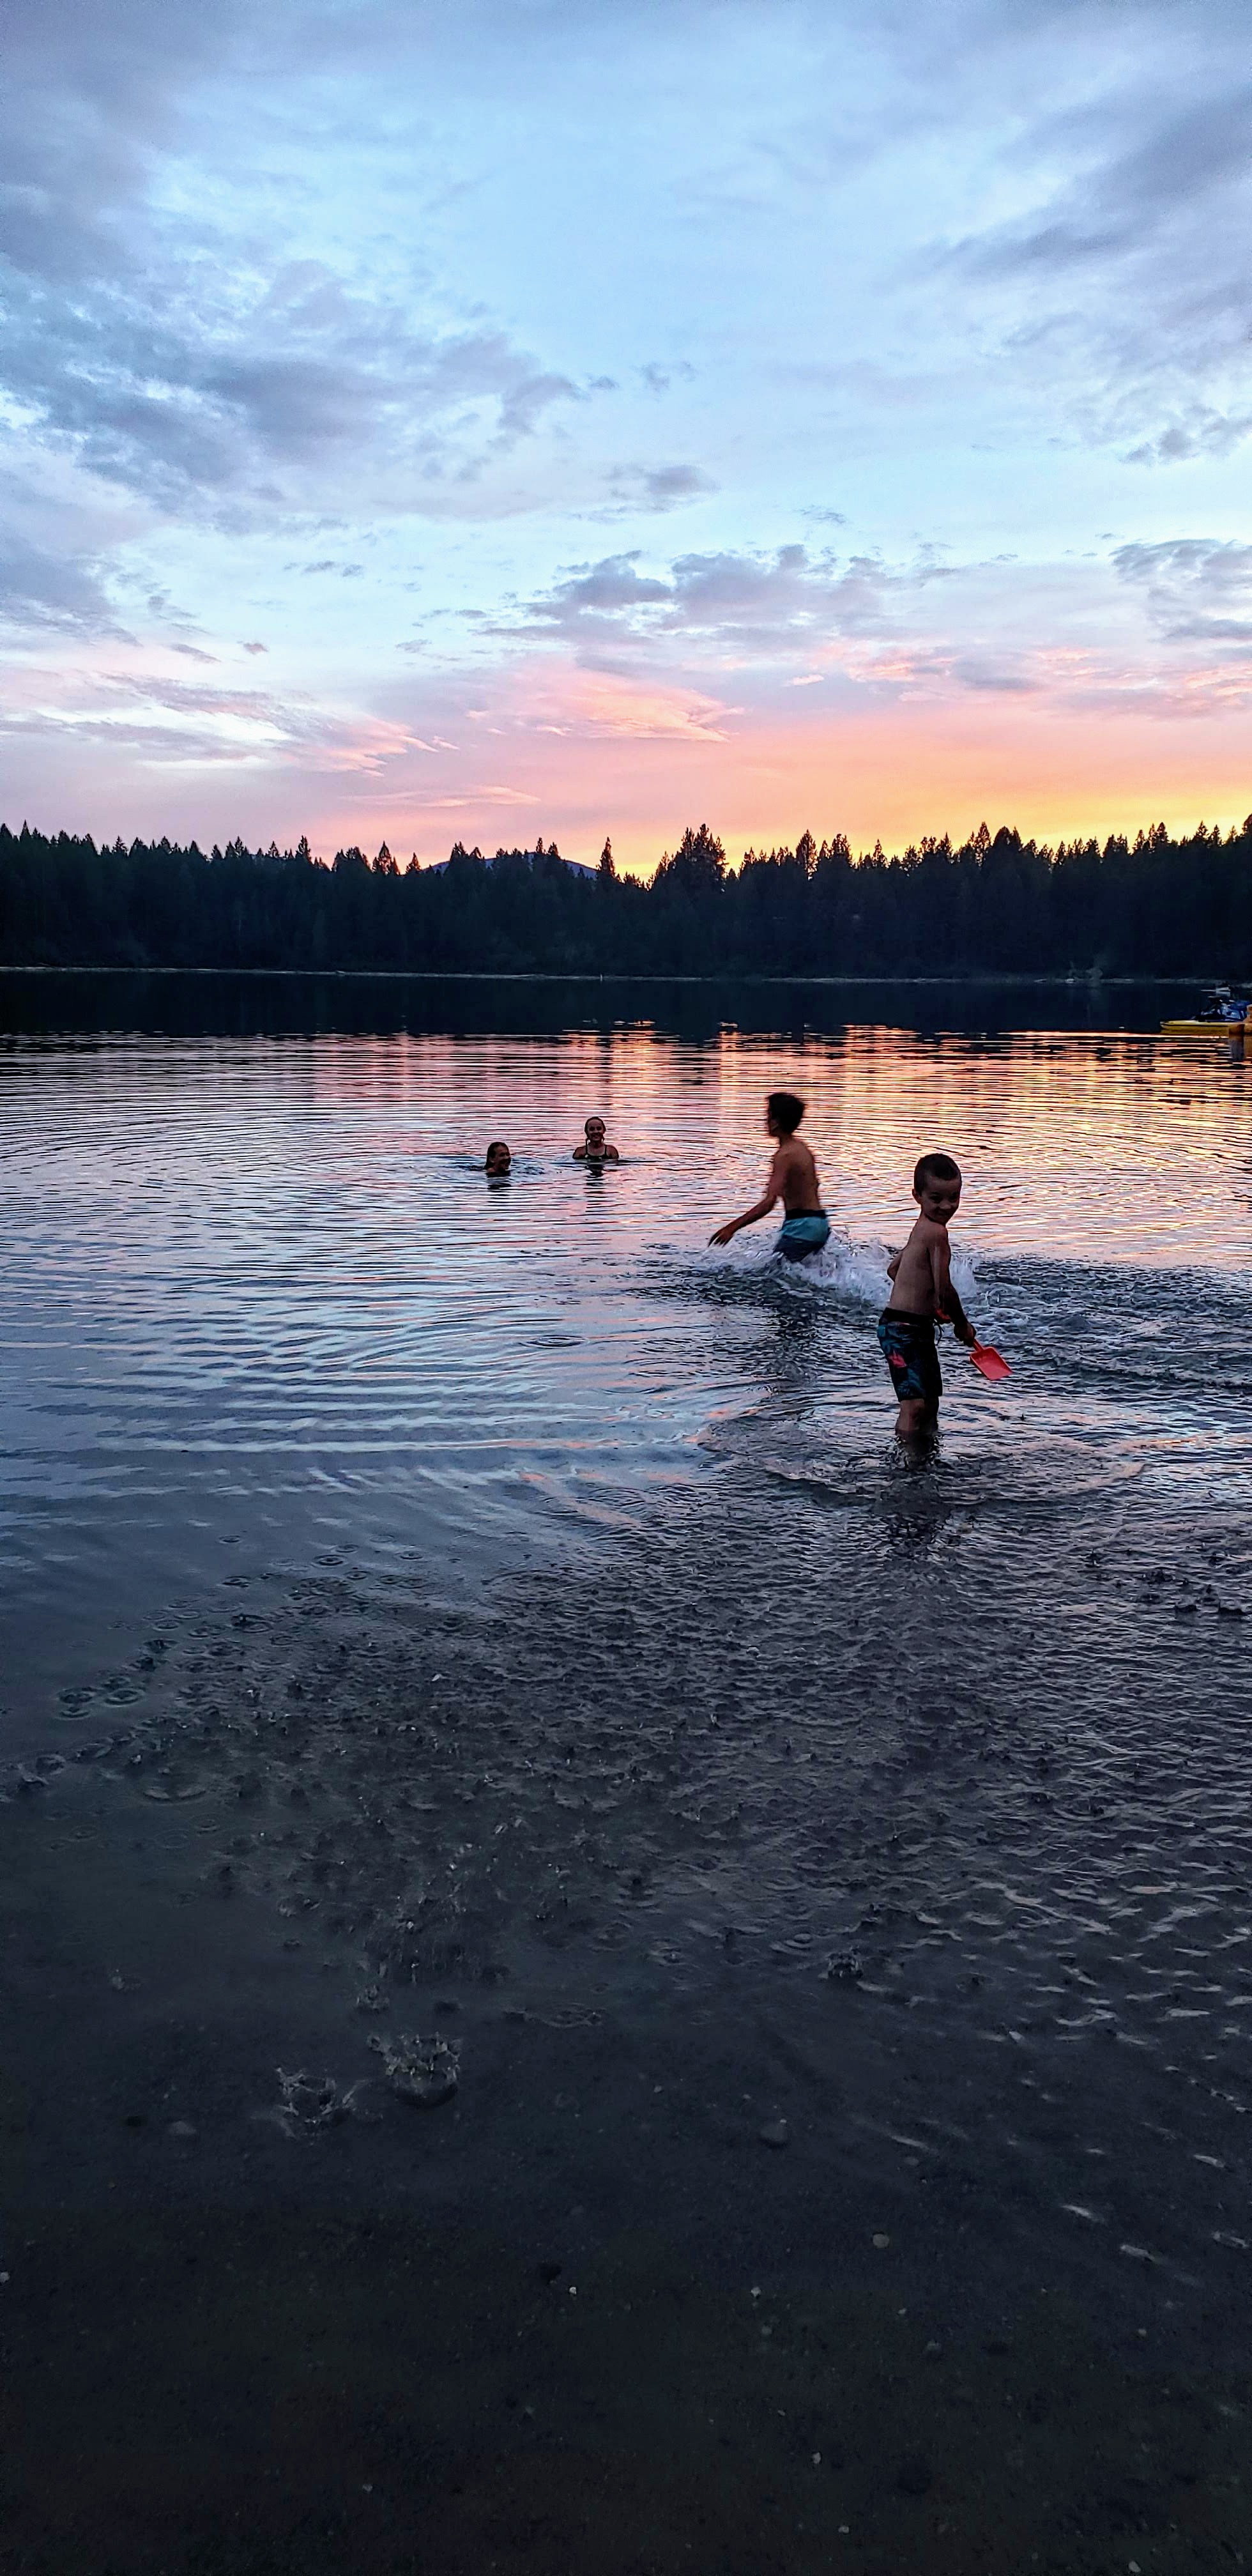 Sunset swim (plus moonlight and all the day swims)